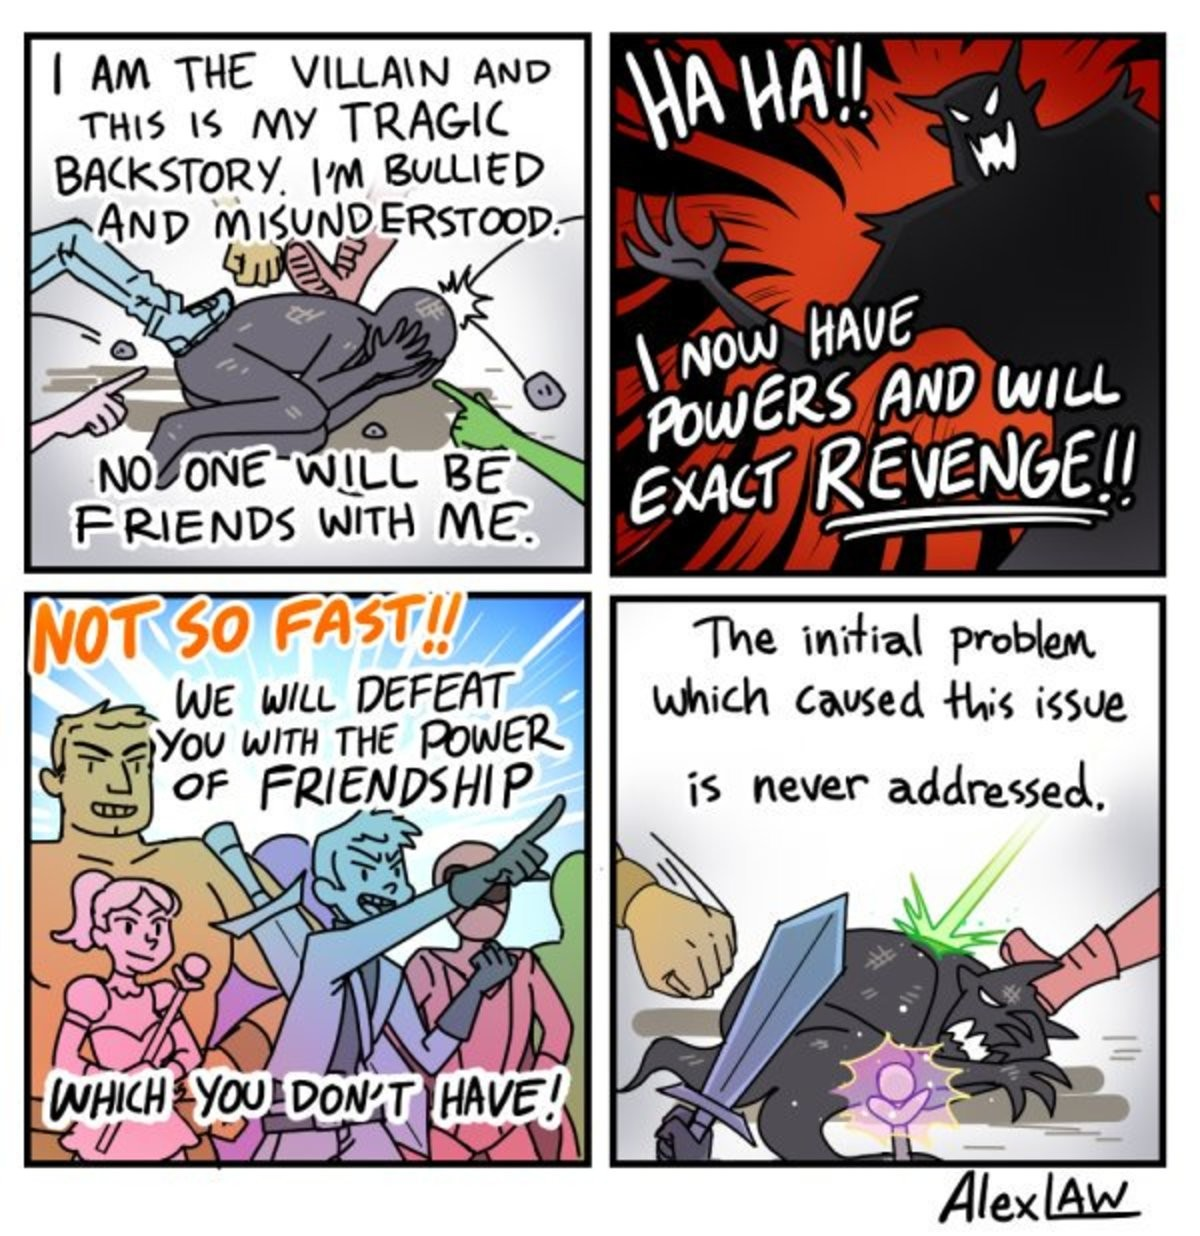 Truth right there, can't there be a psychology hero? Talk power. .. Yes it is, because this villain typically exacts revenge on the innocent. The new bully is stopped before he can continue the cycle. the worst part of this is t